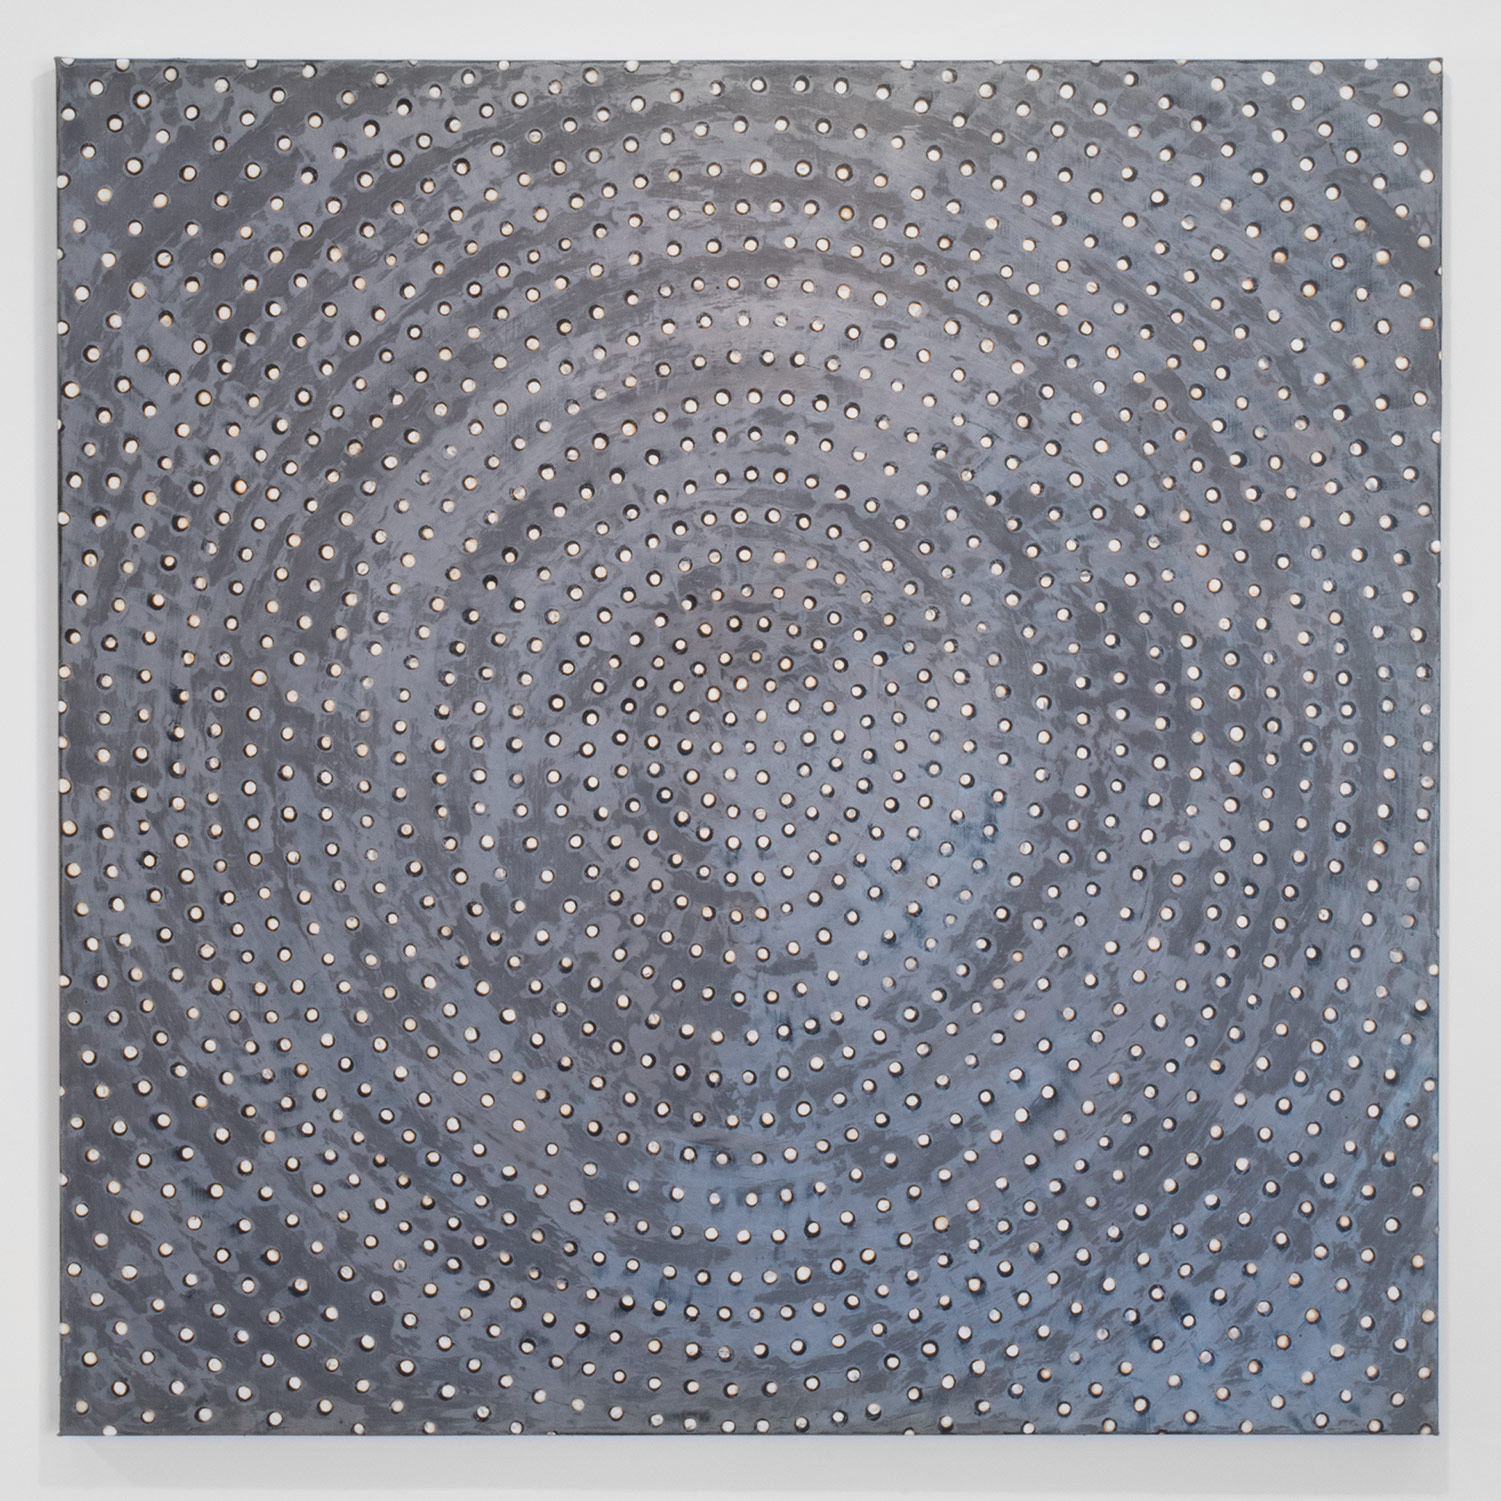 Ross Bleckner                                         'Untitled', 2014                                         60 x 60 Inches                                         oil on linen